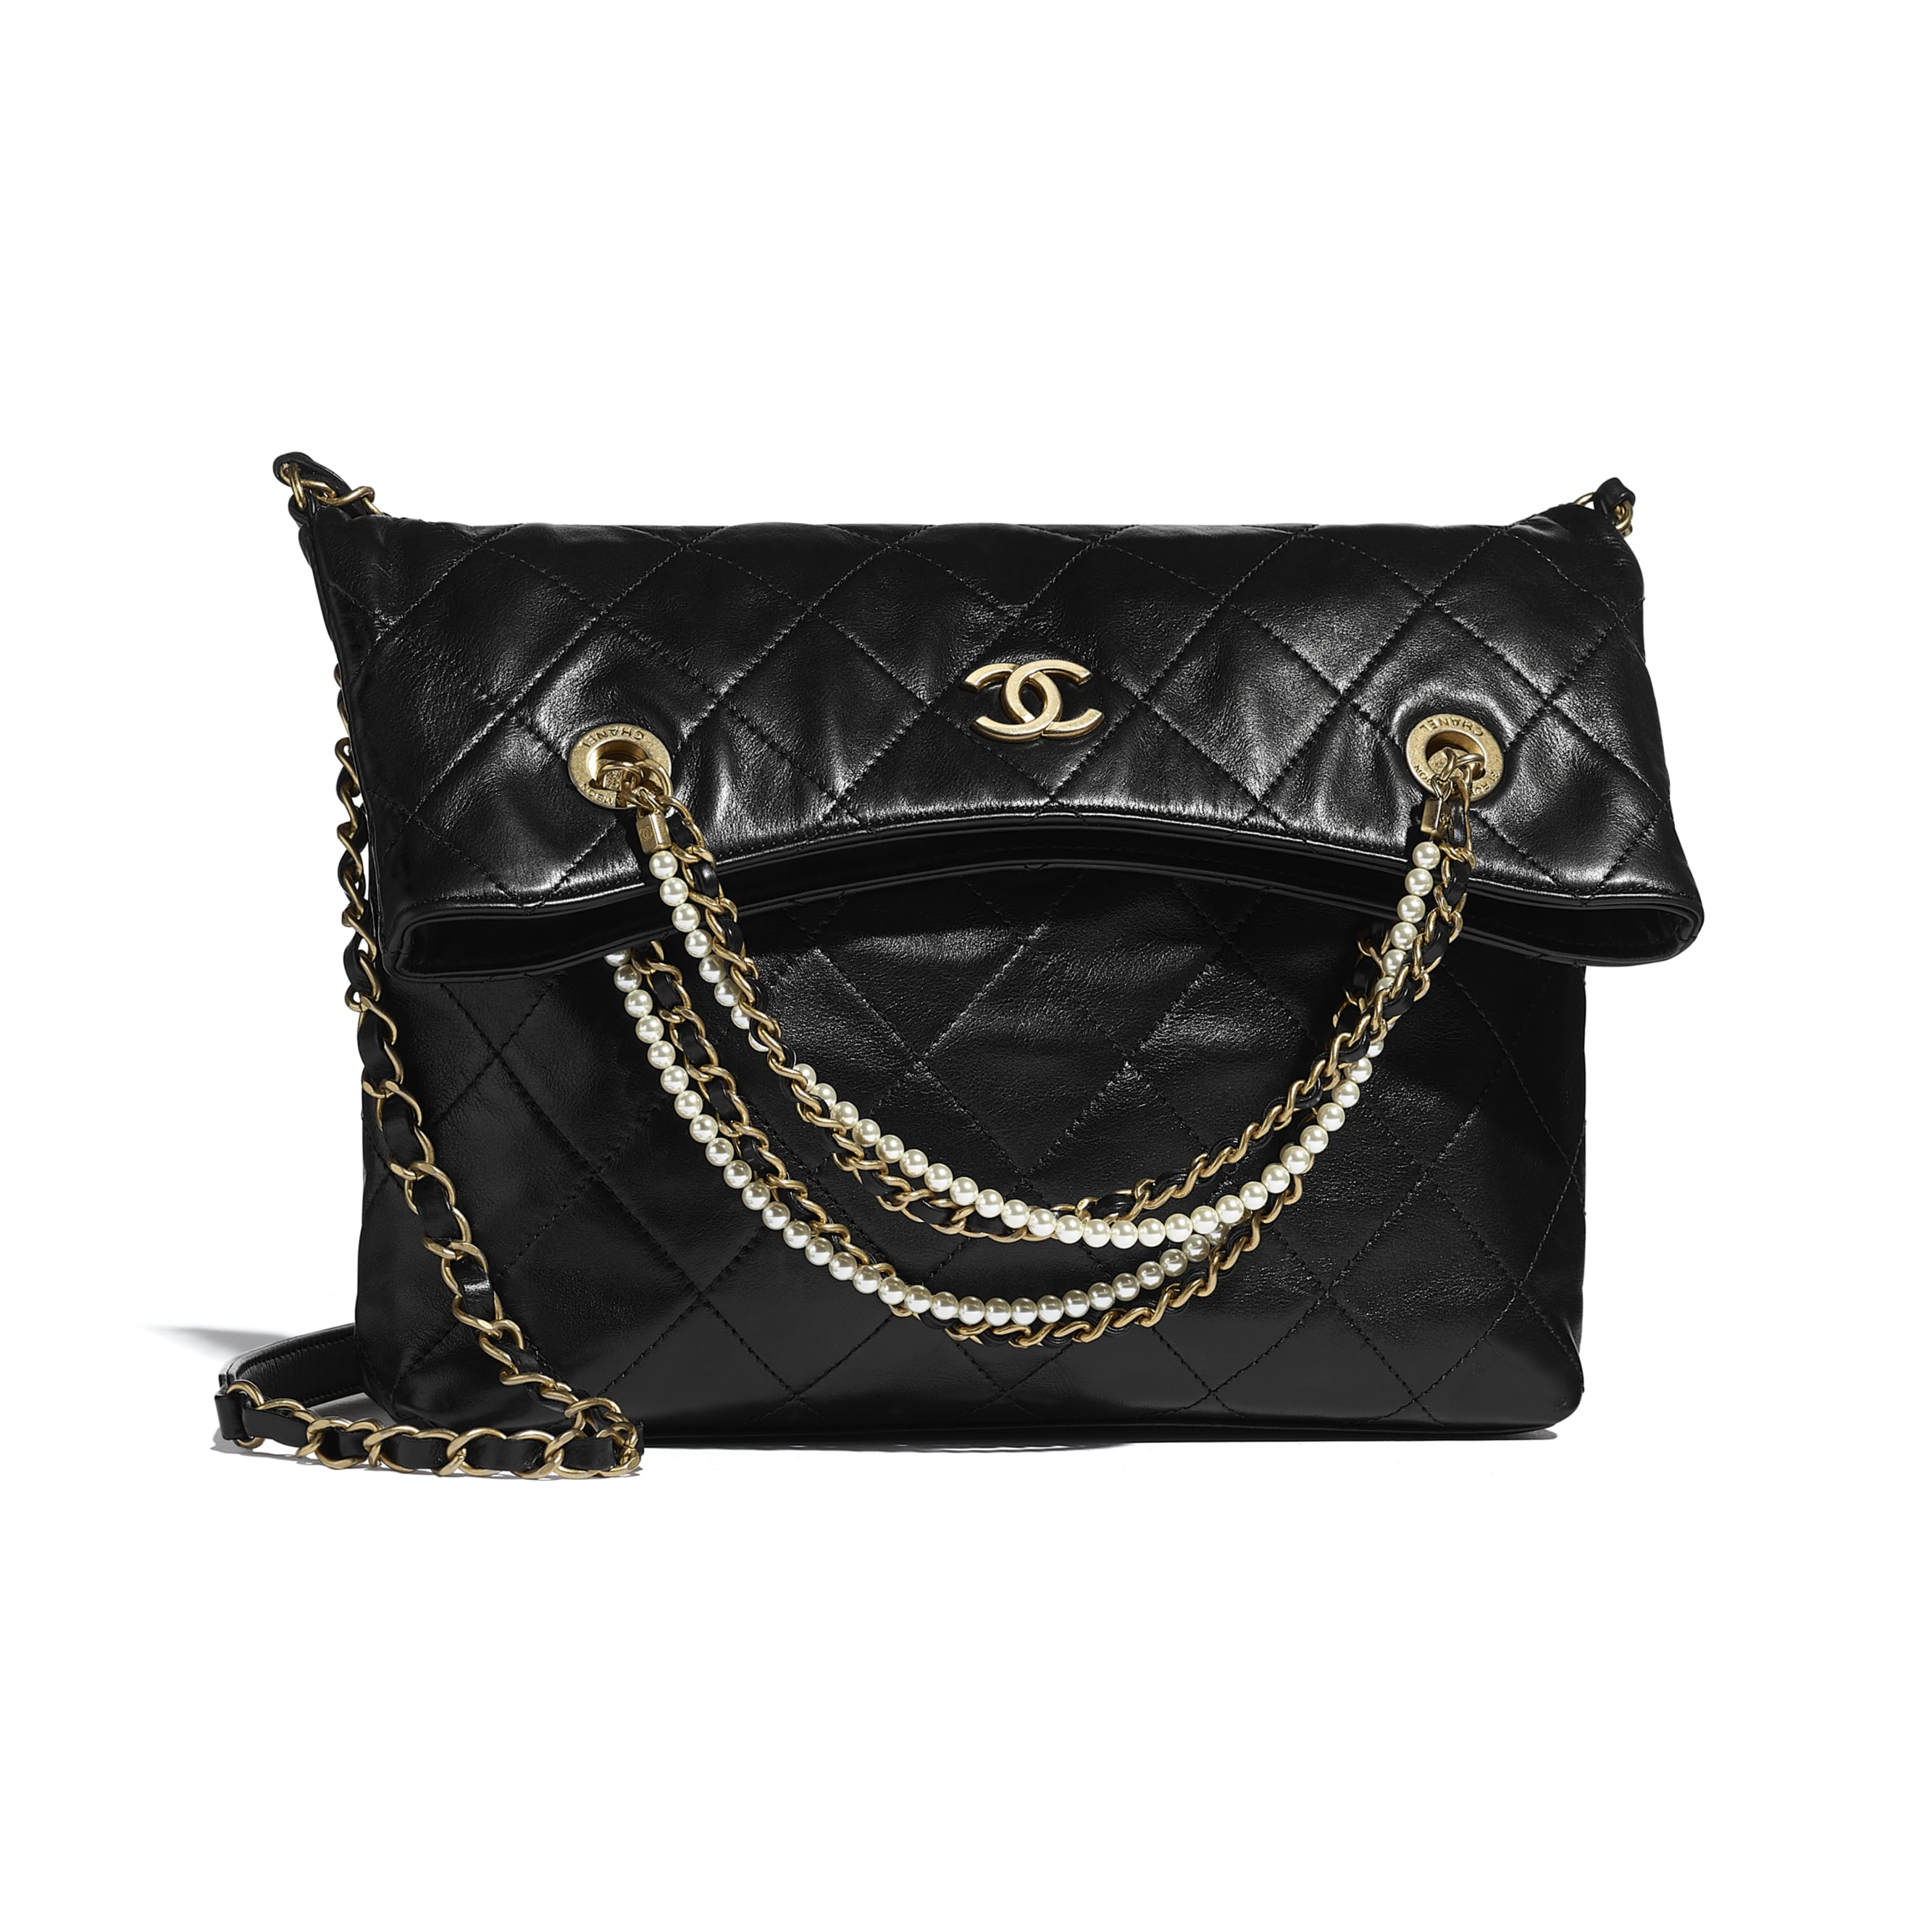 Shopping Bag - Black - Calfskin, Crystal Pearls & Gold-Tone Metal - CHANEL - Default view - see standard sized version